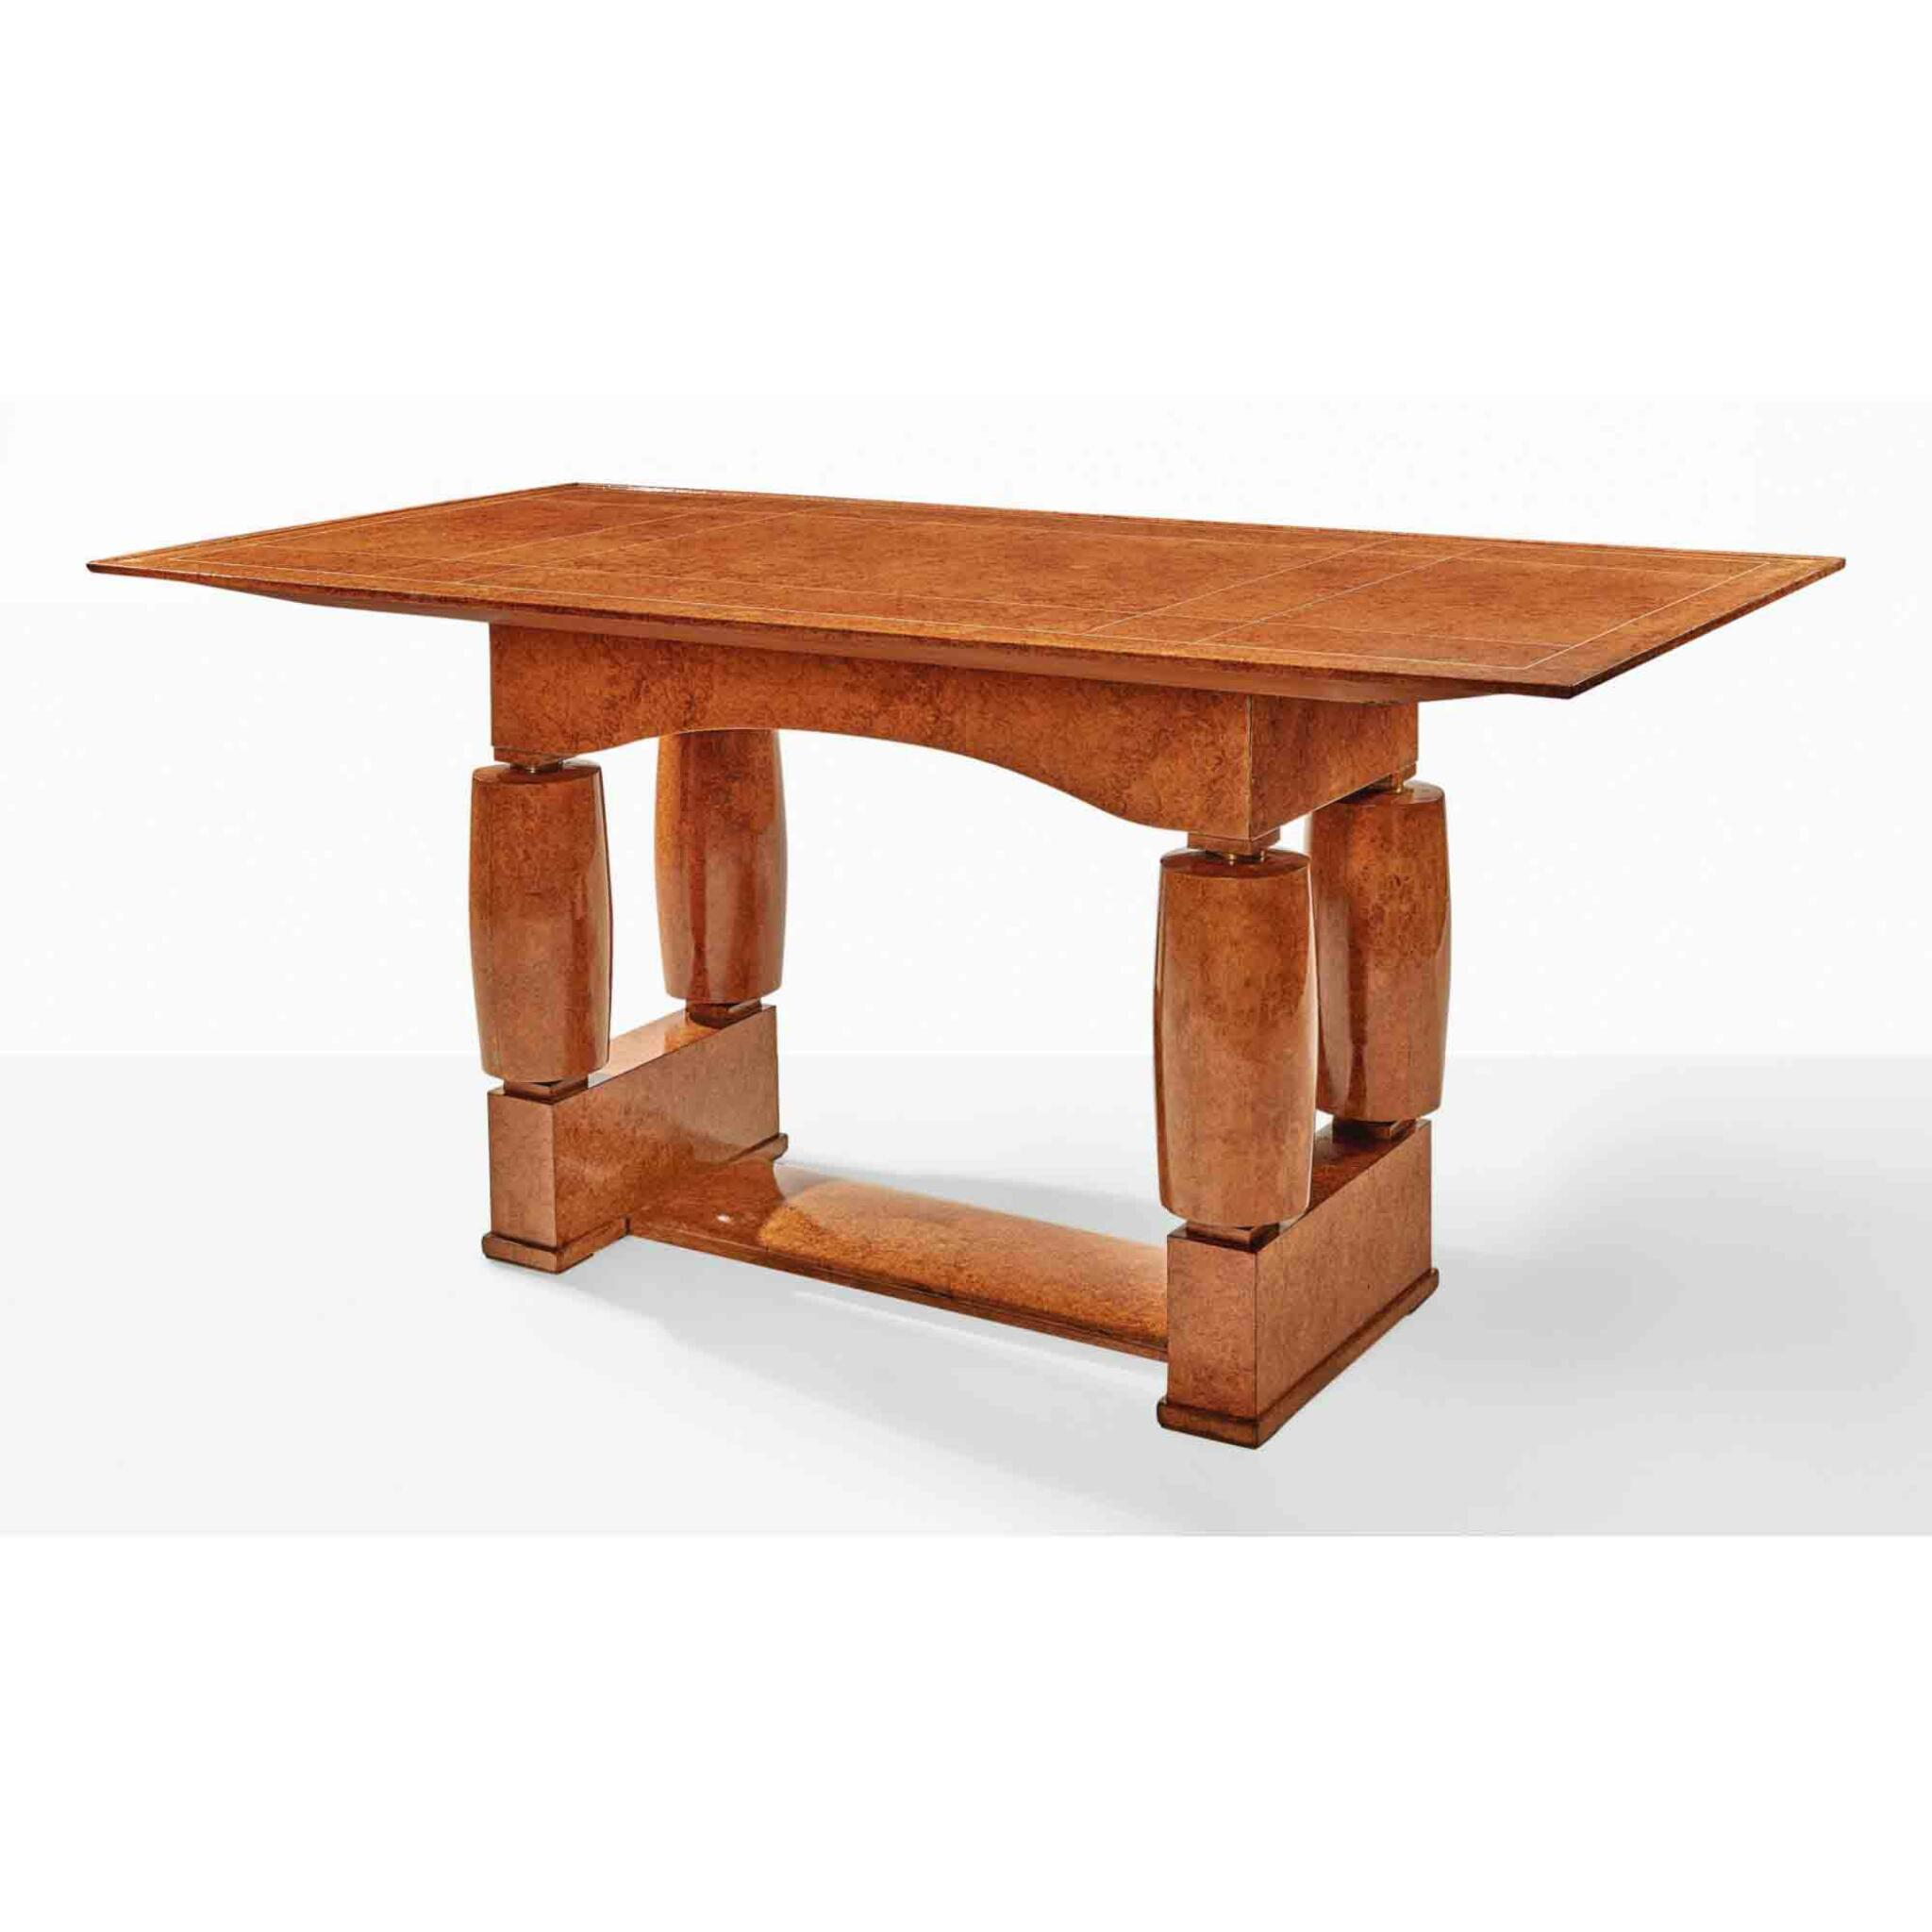 """View full screen - View 1 of Lot 66. A Unique """"Lorcia"""" Table, Model No. NR1510/AR1029."""